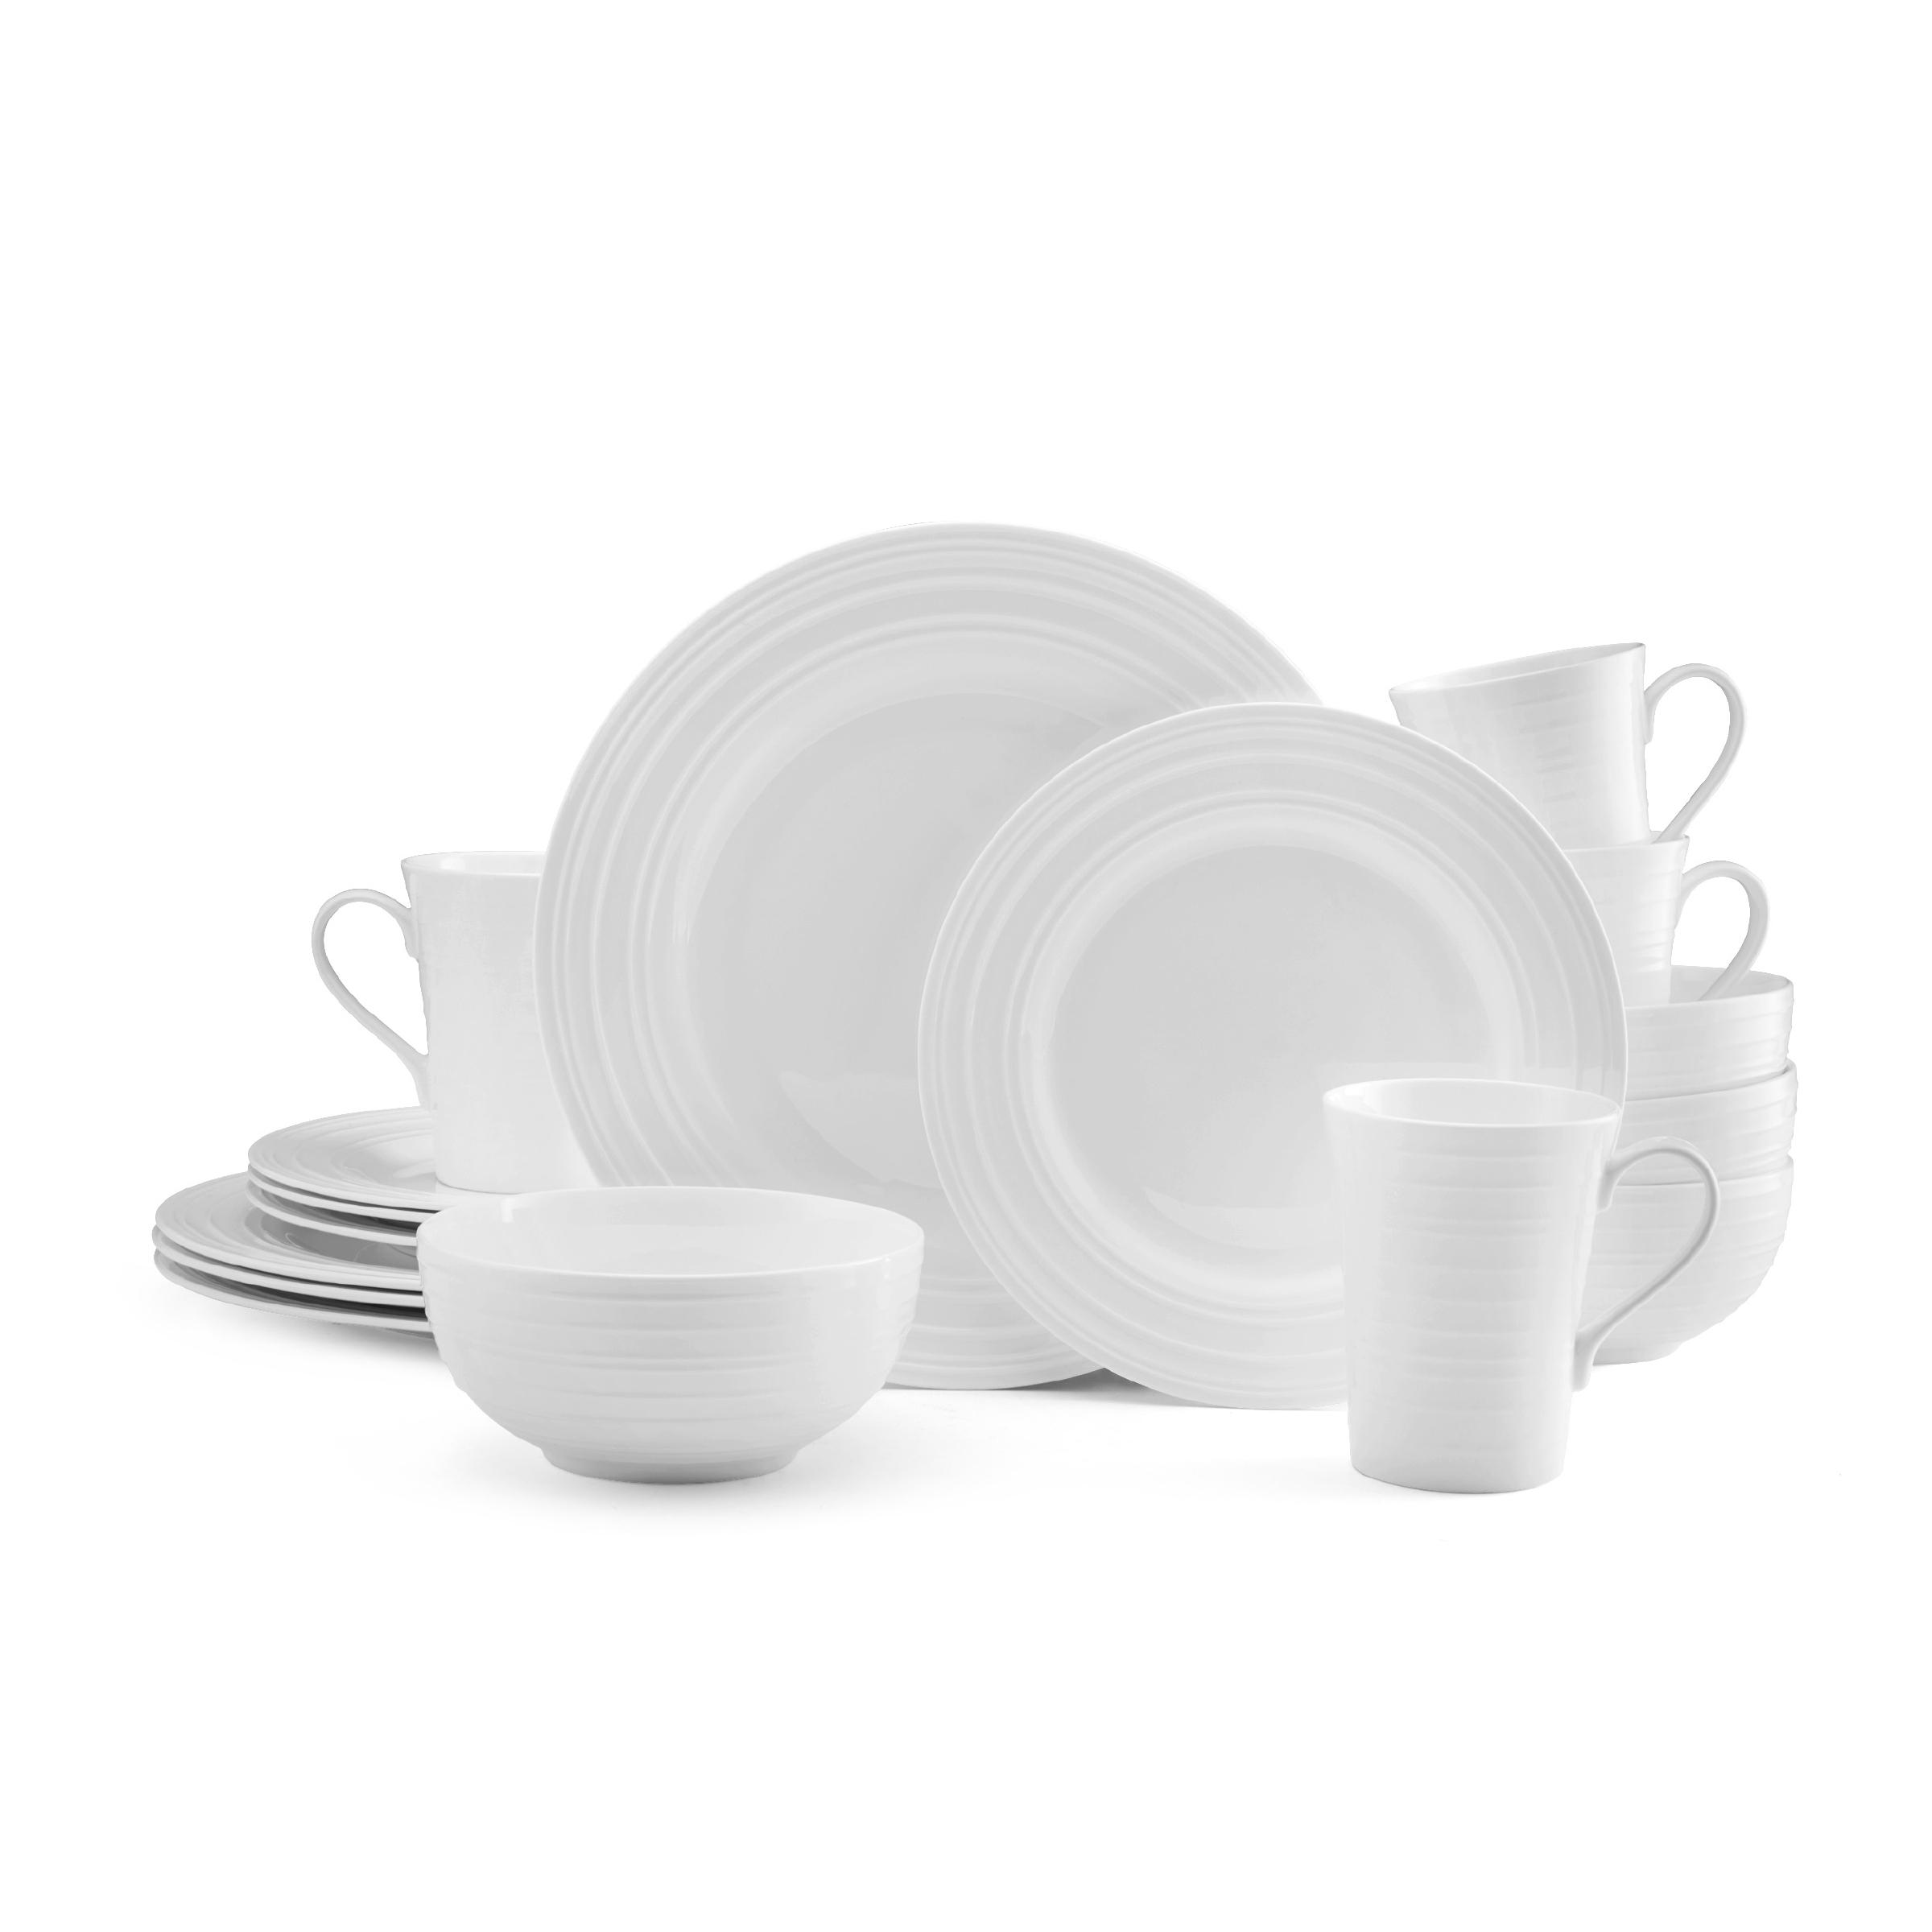 View larger  sc 1 st  Amazon.com & Amazon.com: Mikasa Delray 16-Piece Bone China Dinnerware Set ...